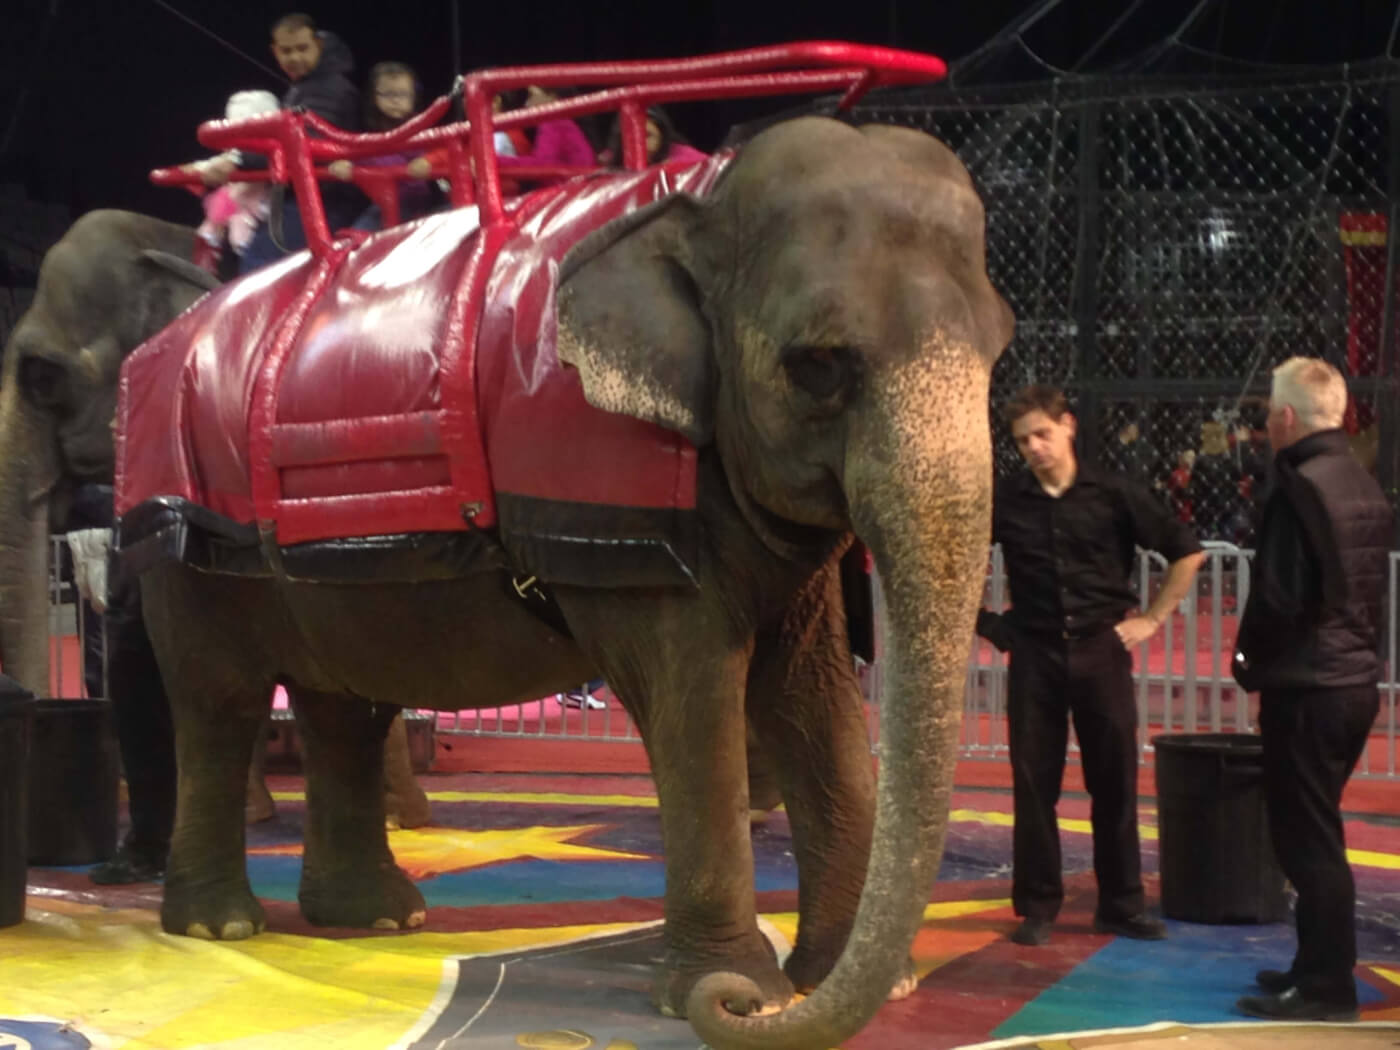 Carden Circus: Elephants and Tigers Are Not Circus Props!